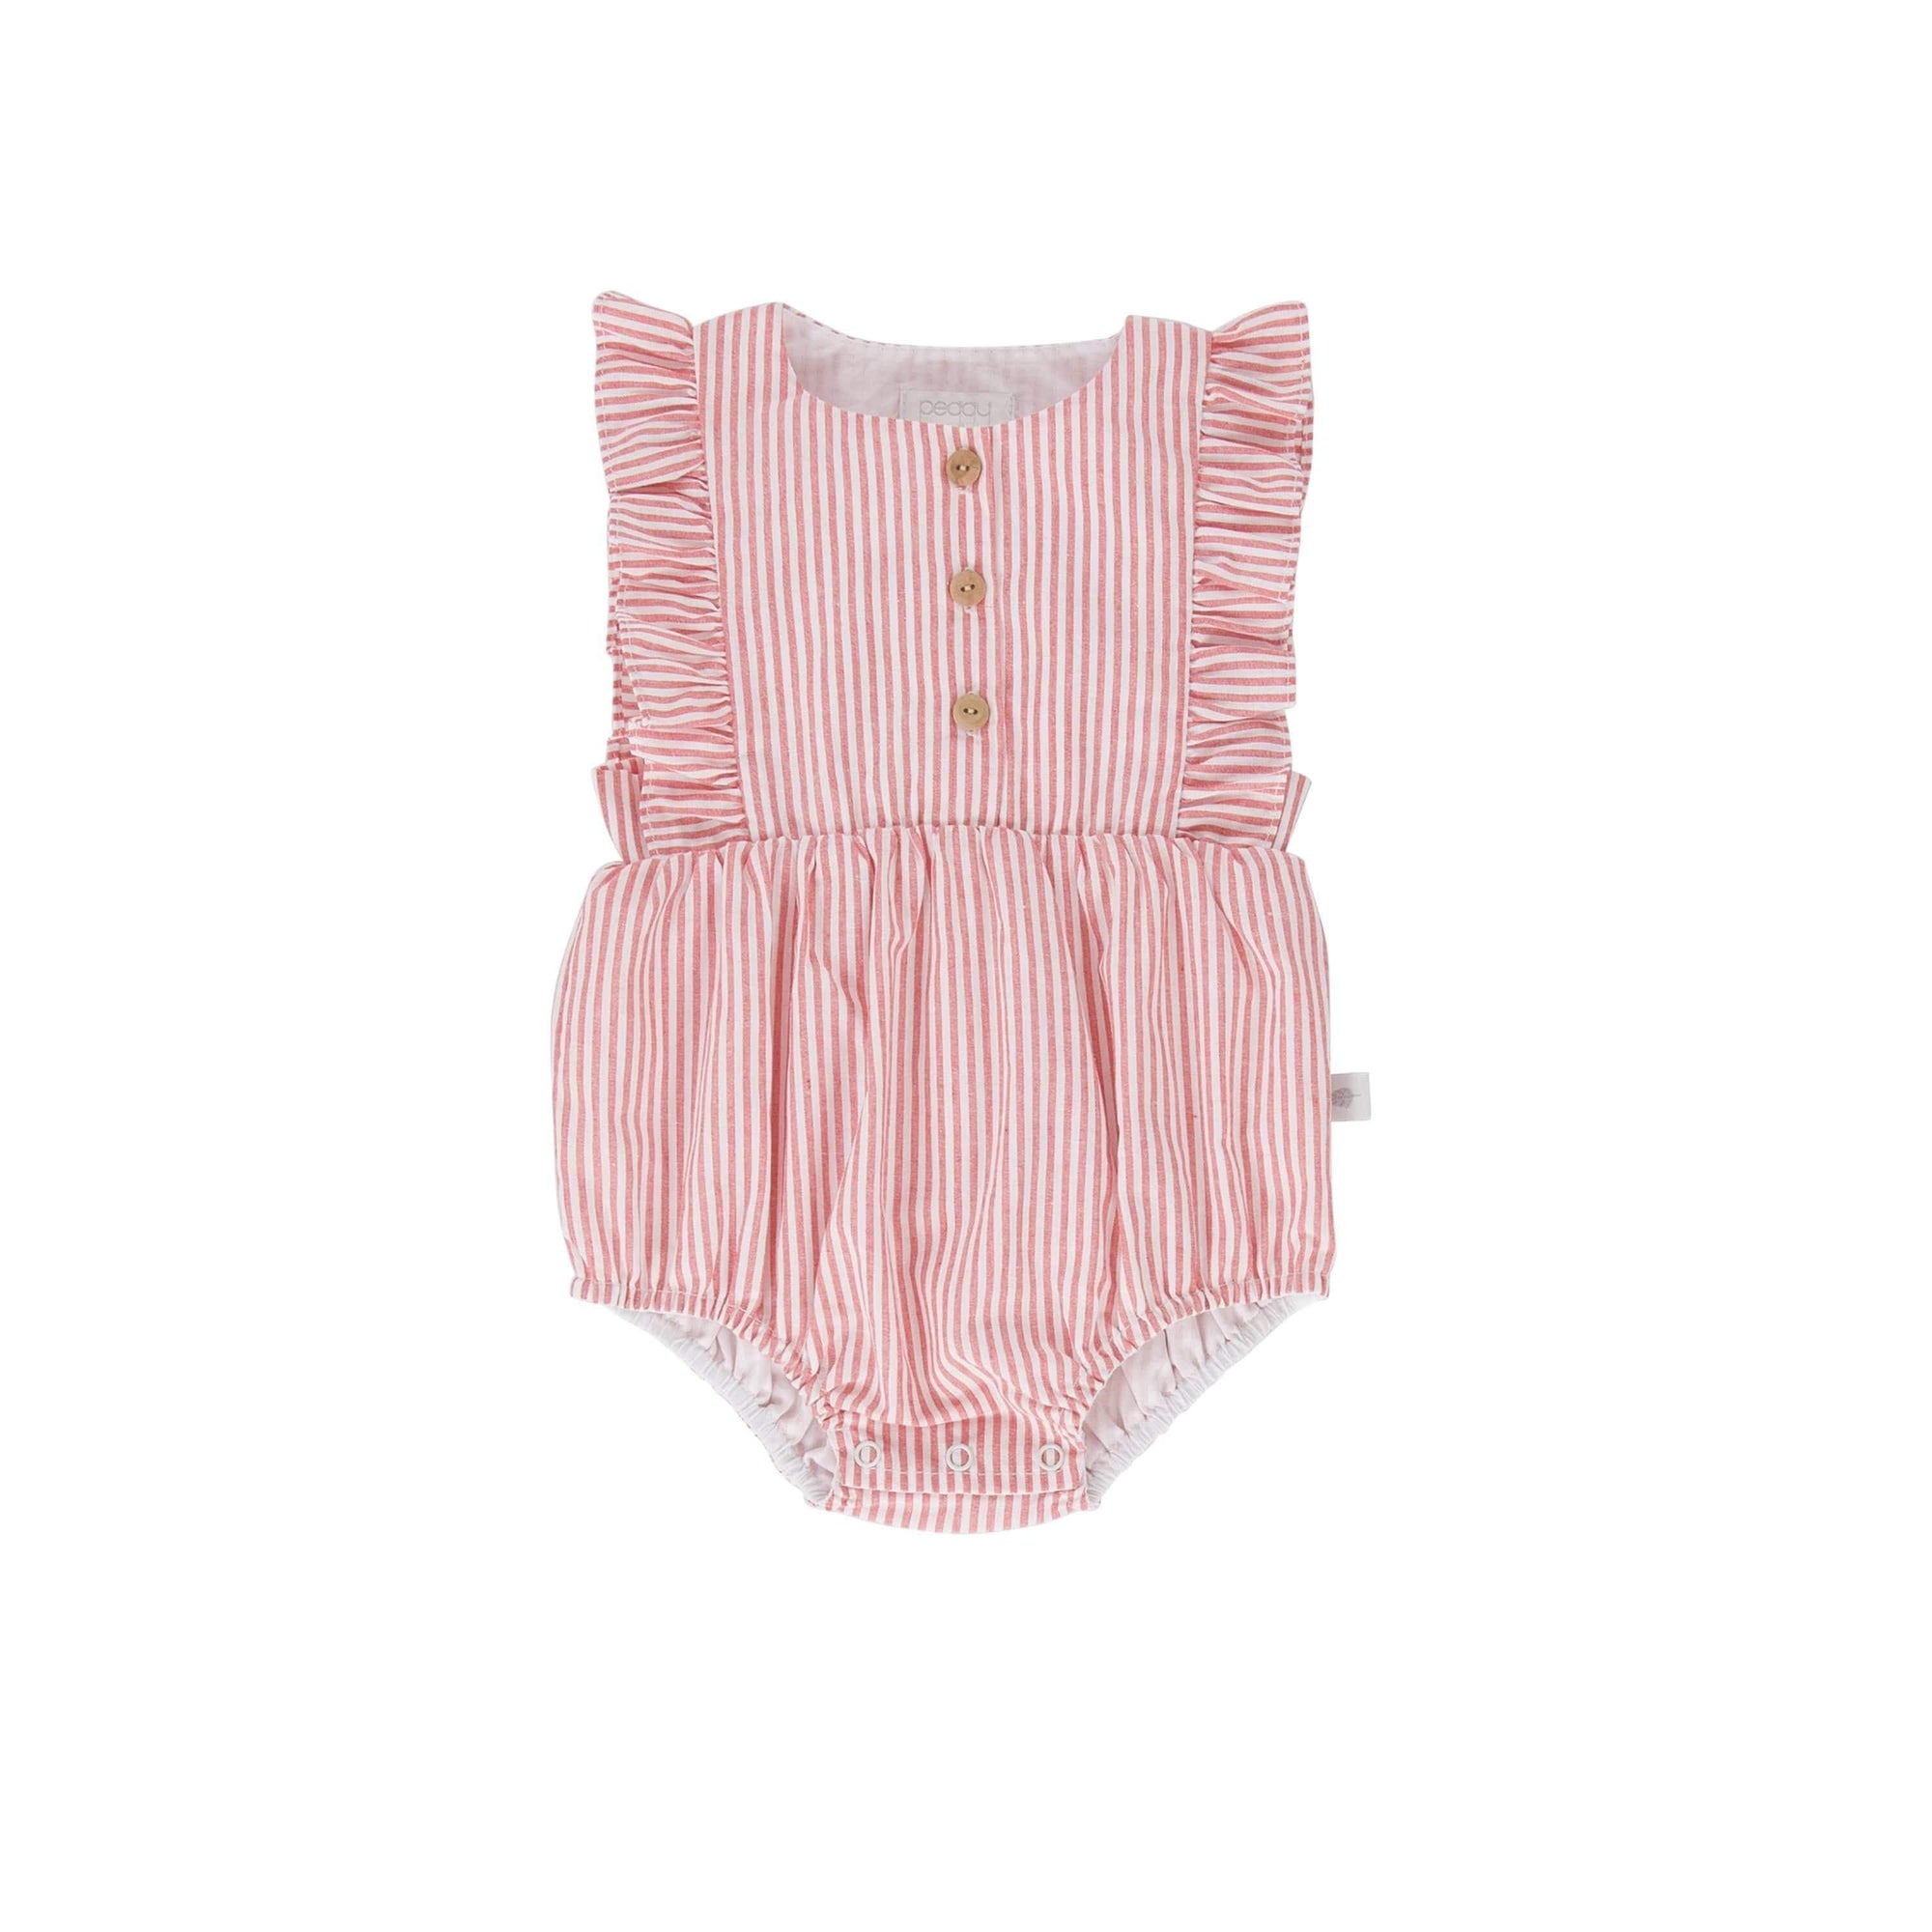 Peggy Playsuit & Jumpsuit 0-3M Peggy August Playsuit Red/White Pinstripe